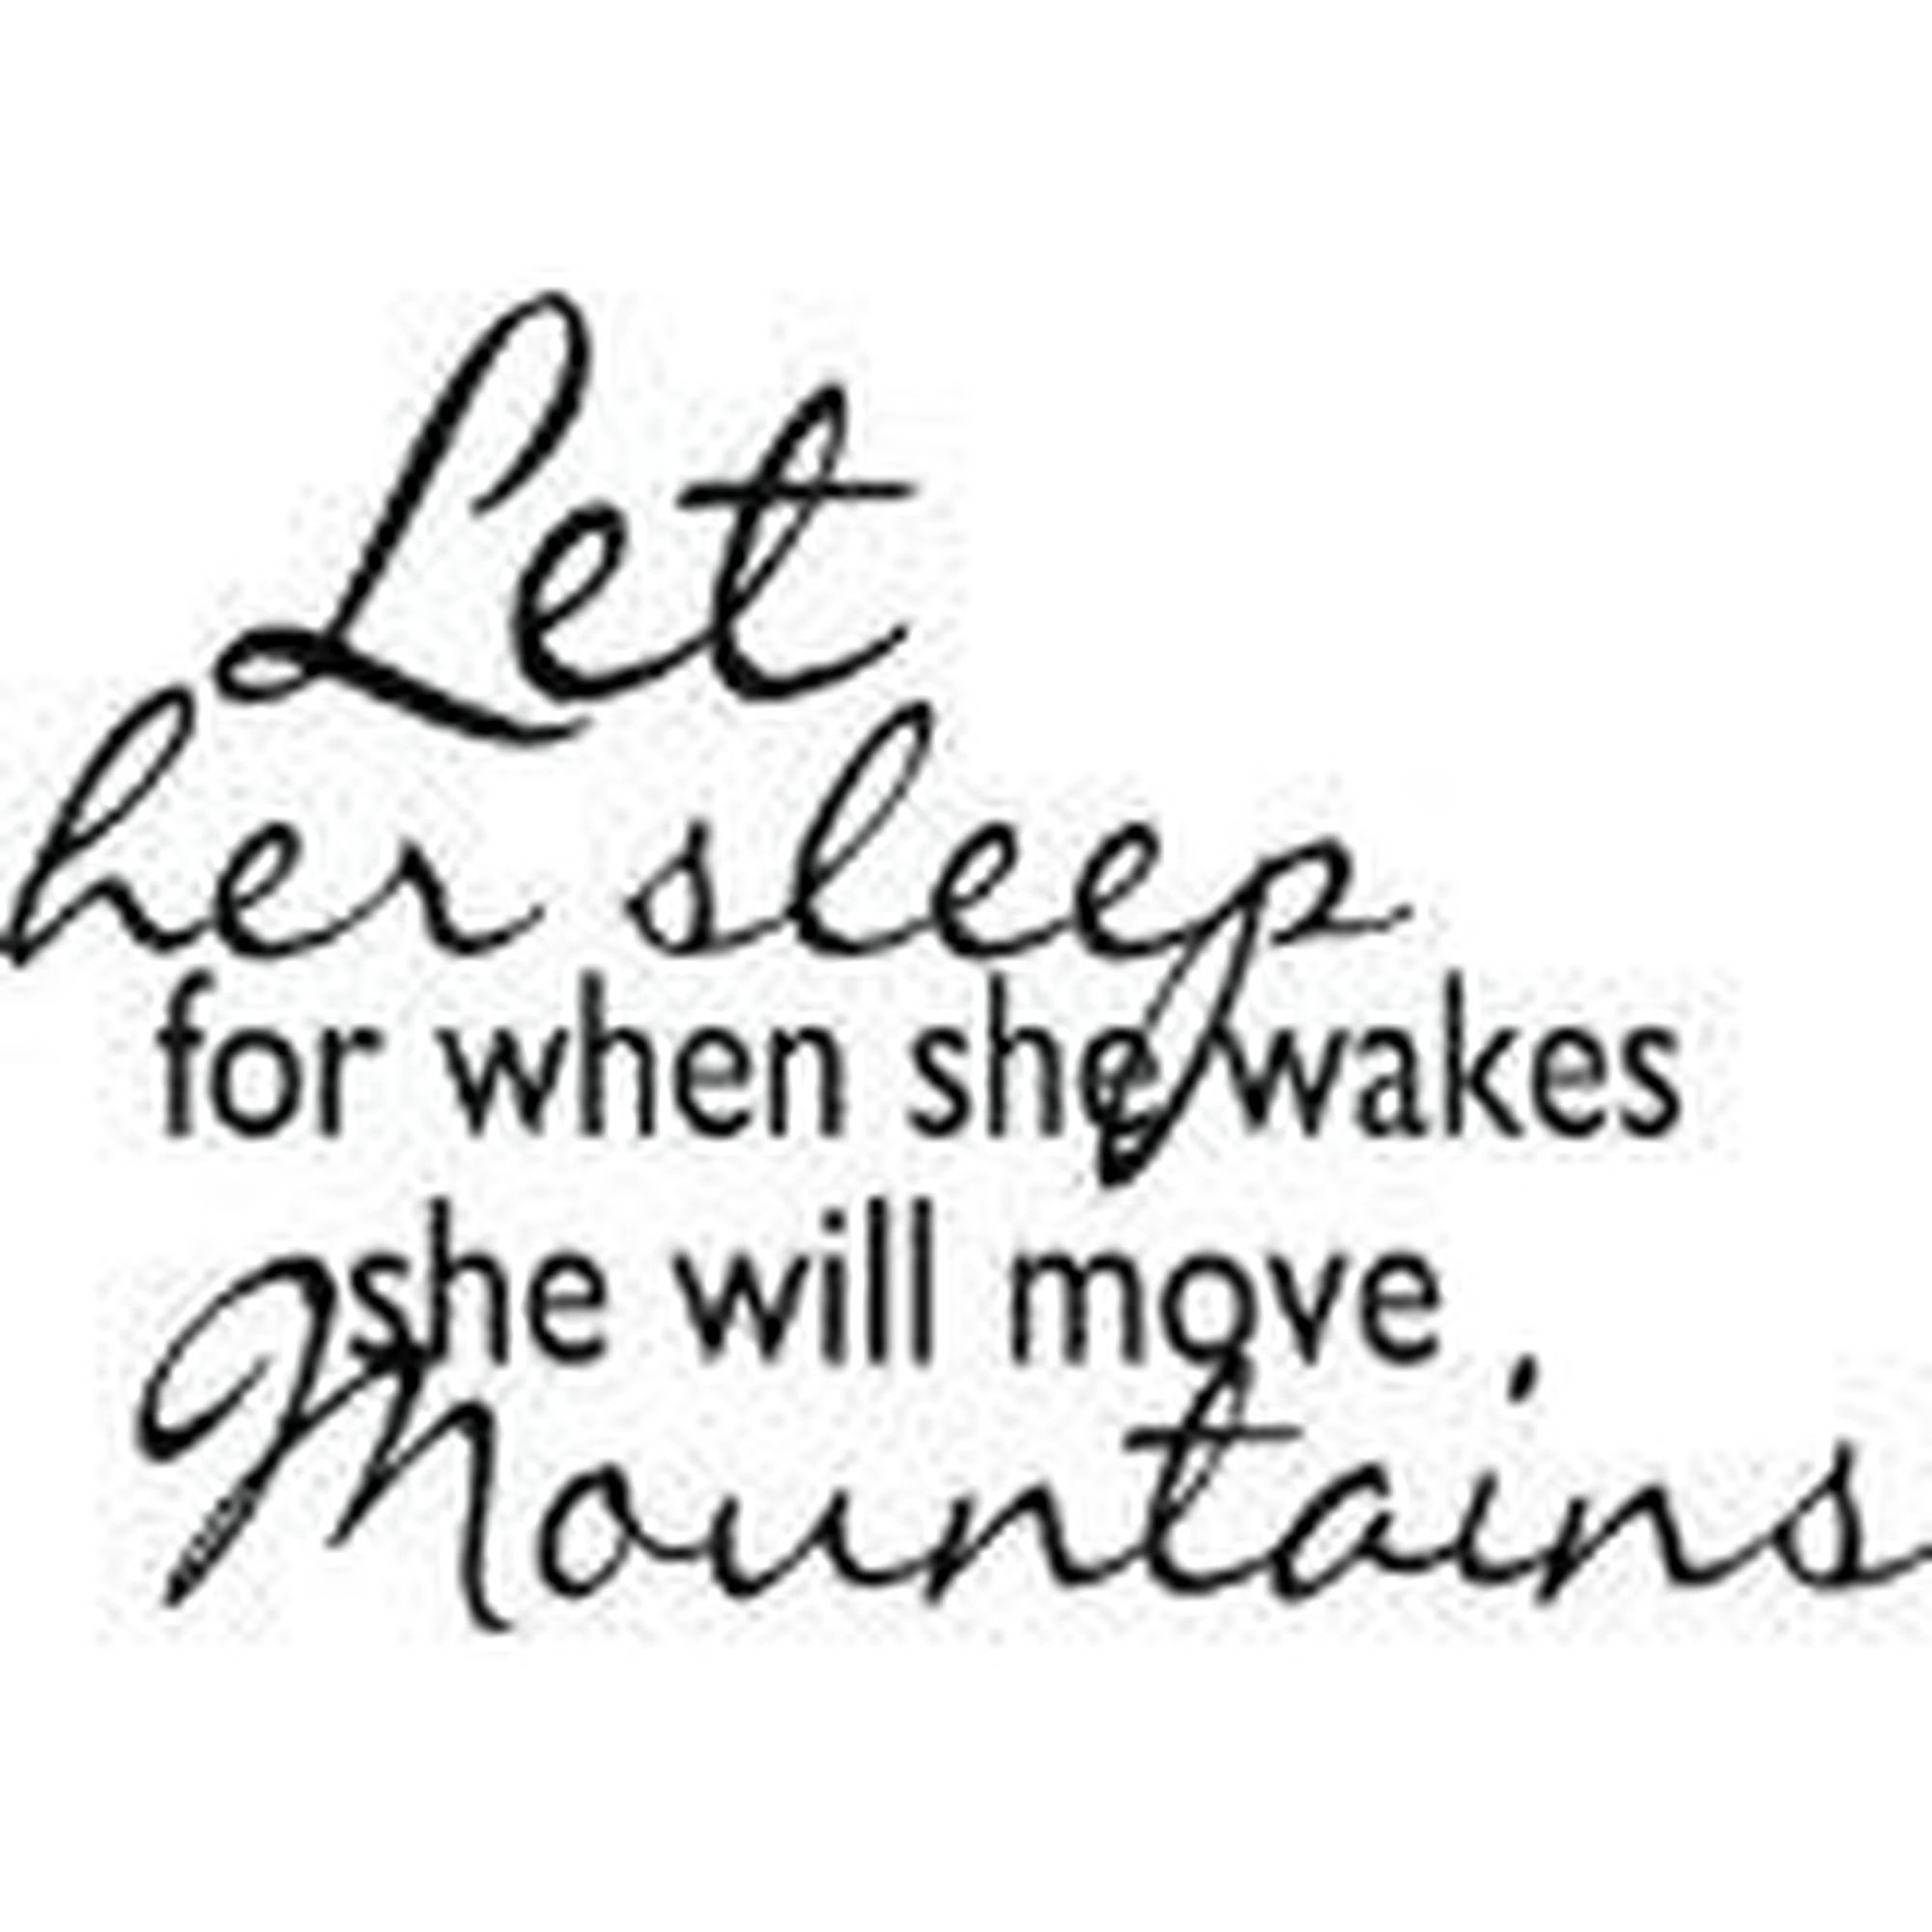 "Let Her Sleep For When She Wakes She Will Move Mountains Room Vinyl Wall Decal, 15"" x 20"", Black"